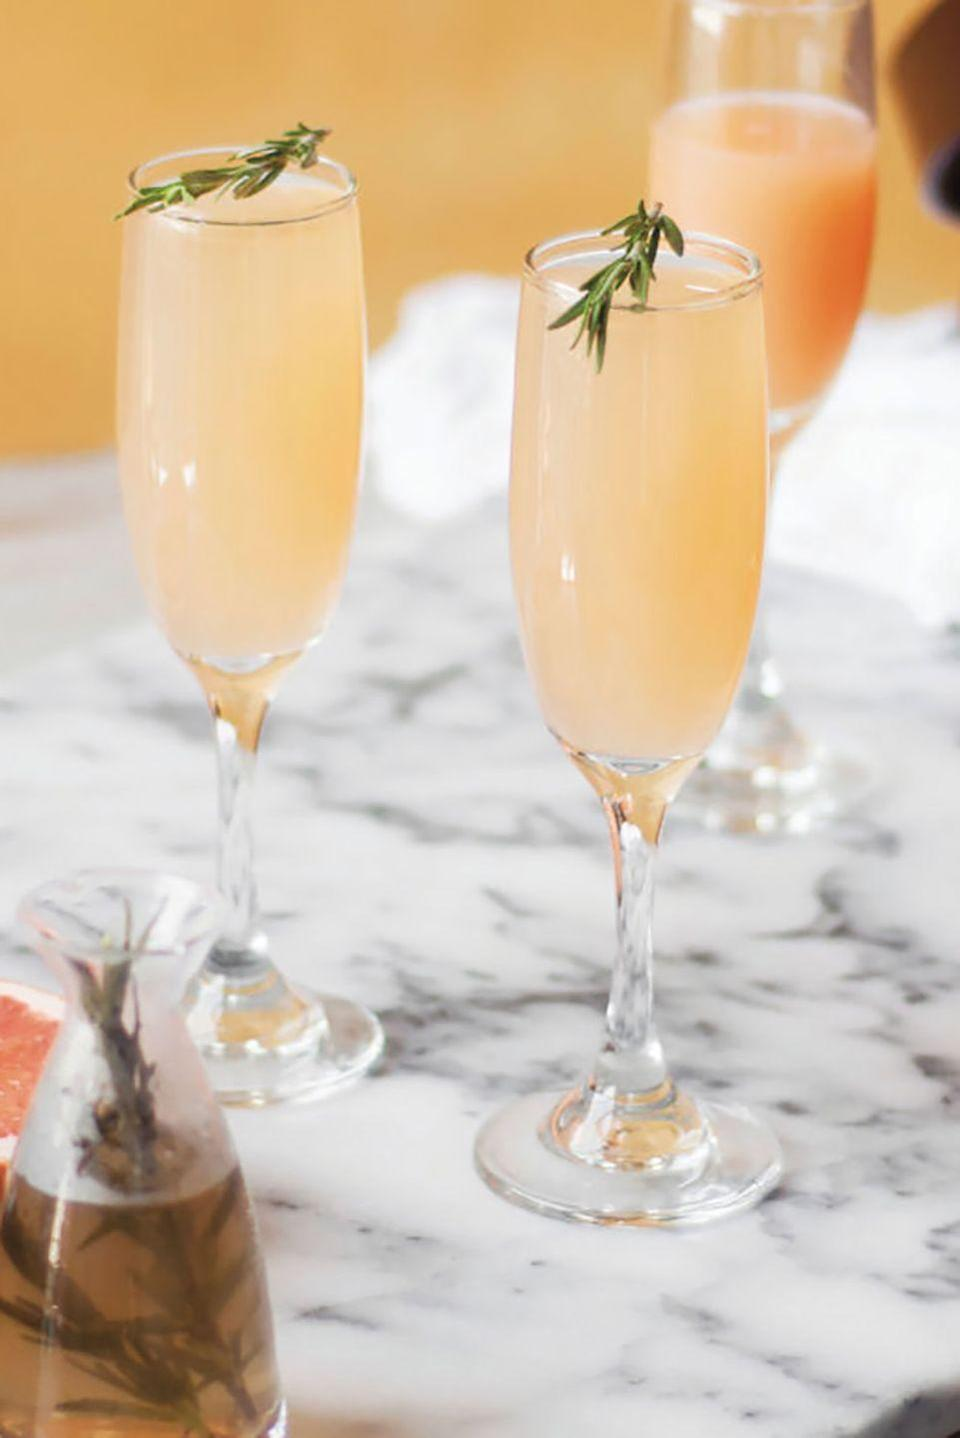 """<p>These mimosas are sweet, herbaceous, and entirely refreshing. </p><p><strong><a href=""""https://www.countryliving.com/food-drinks/recipes/a42606/grapefruit-and-rosemary-mimosa/"""" rel=""""nofollow noopener"""" target=""""_blank"""" data-ylk=""""slk:Get the recipe"""" class=""""link rapid-noclick-resp"""">Get the recipe</a>.</strong></p><p><a class=""""link rapid-noclick-resp"""" href=""""https://www.amazon.com/dp/B07YBJ483D?tag=syn-yahoo-20&ascsubtag=%5Bartid%7C10050.g.30433150%5Bsrc%7Cyahoo-us"""" rel=""""nofollow noopener"""" target=""""_blank"""" data-ylk=""""slk:SHOP BAR TOOLS"""">SHOP BAR TOOLS</a></p>"""